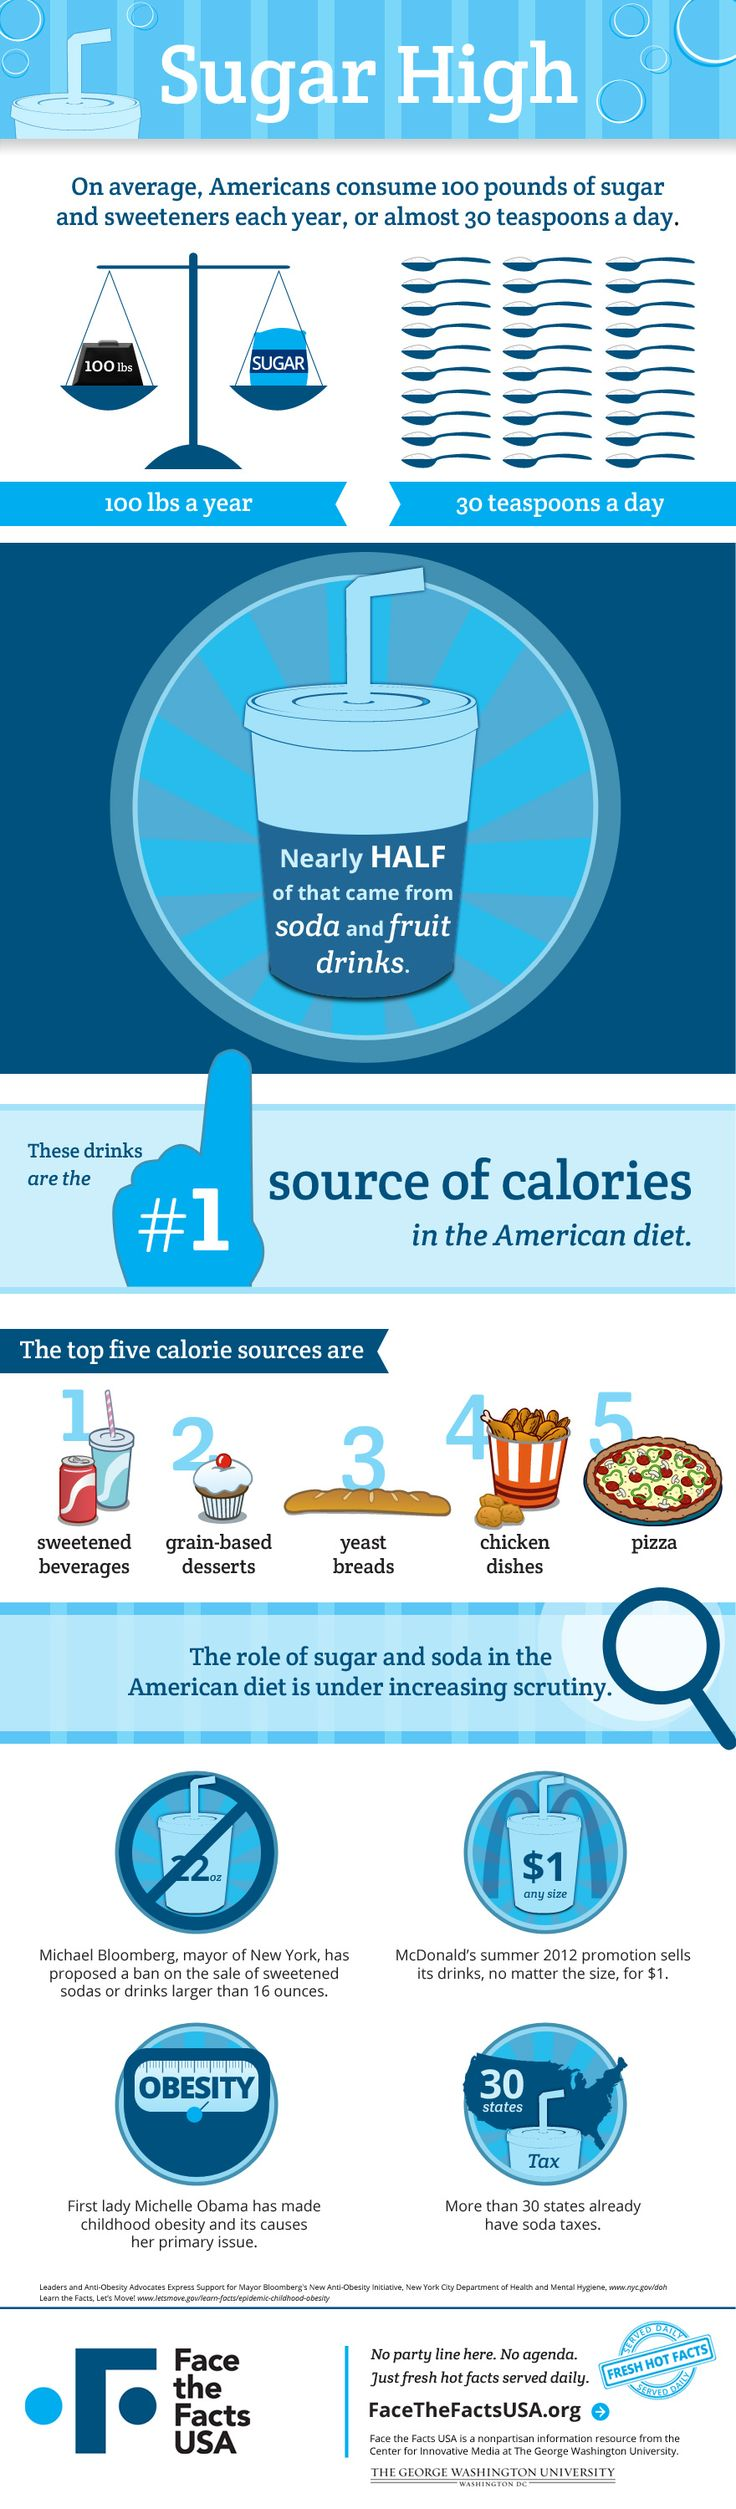 Americans consume nearly 100 pounds of sugar and sweeteners each year. The #1 source? Soda and fruit drinks.